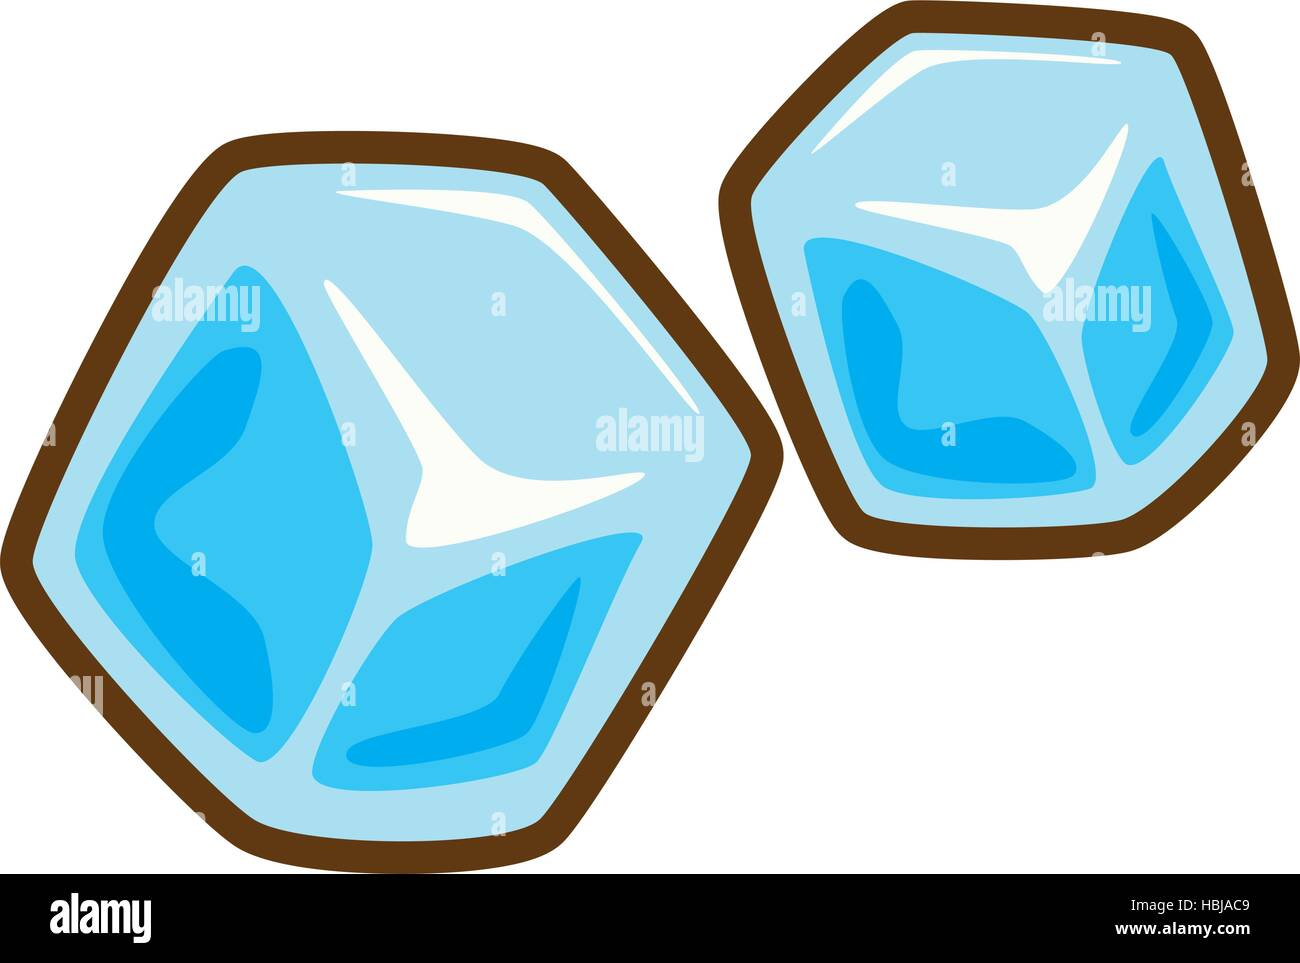 freezing water clip art. stock vector - cartoon ice cubes frozen water illustration eps 10 freezing clip art r